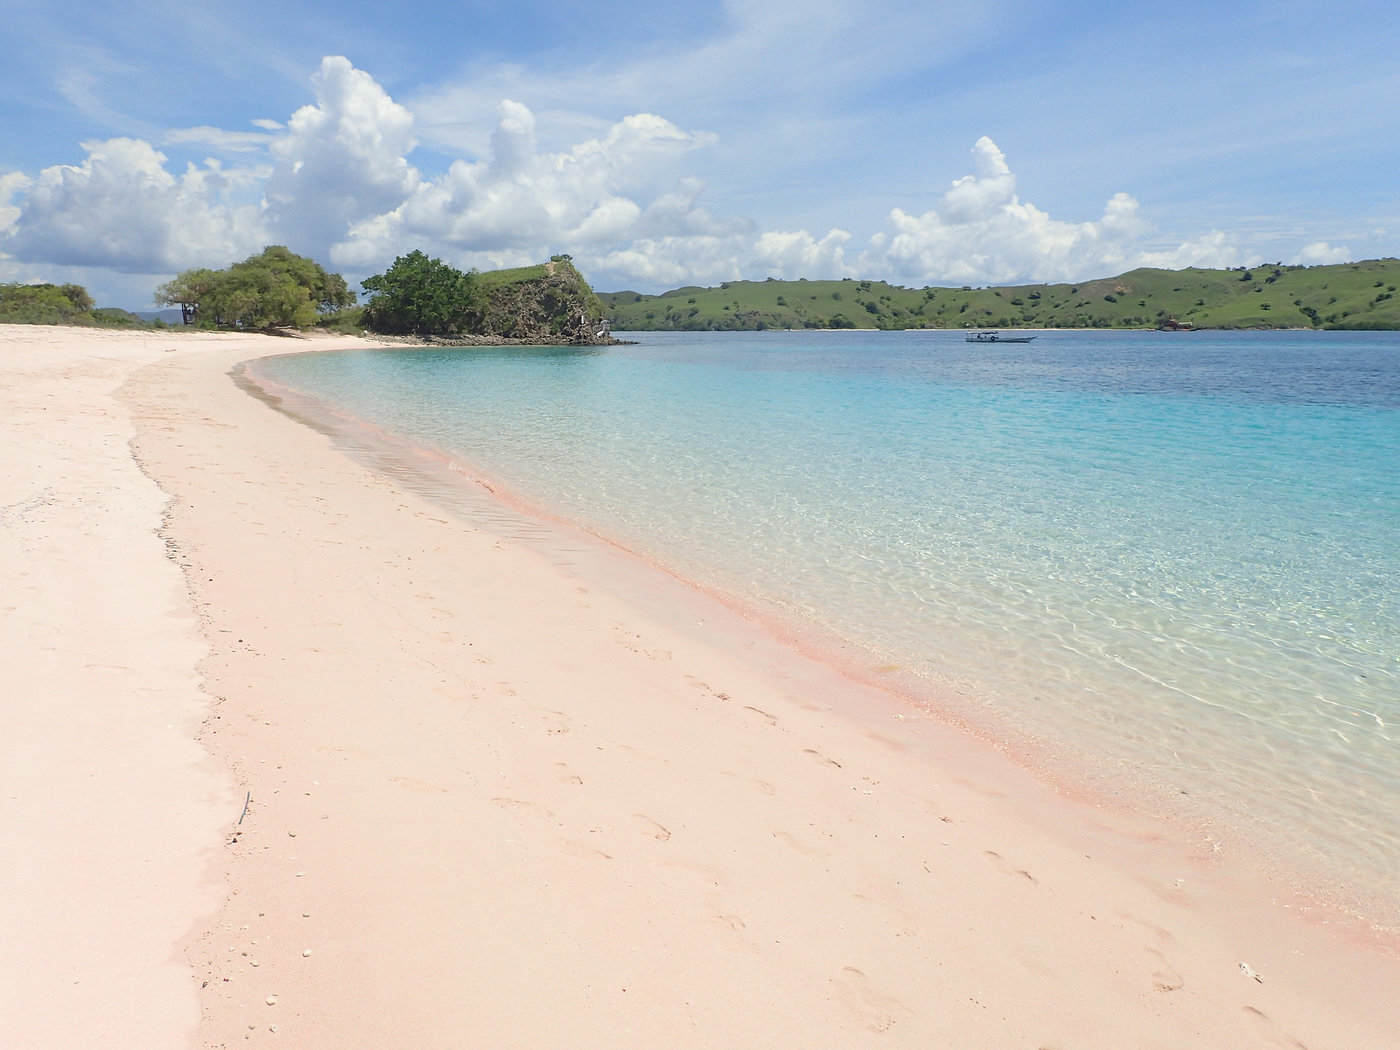 pink beach of komodo island, indonesia